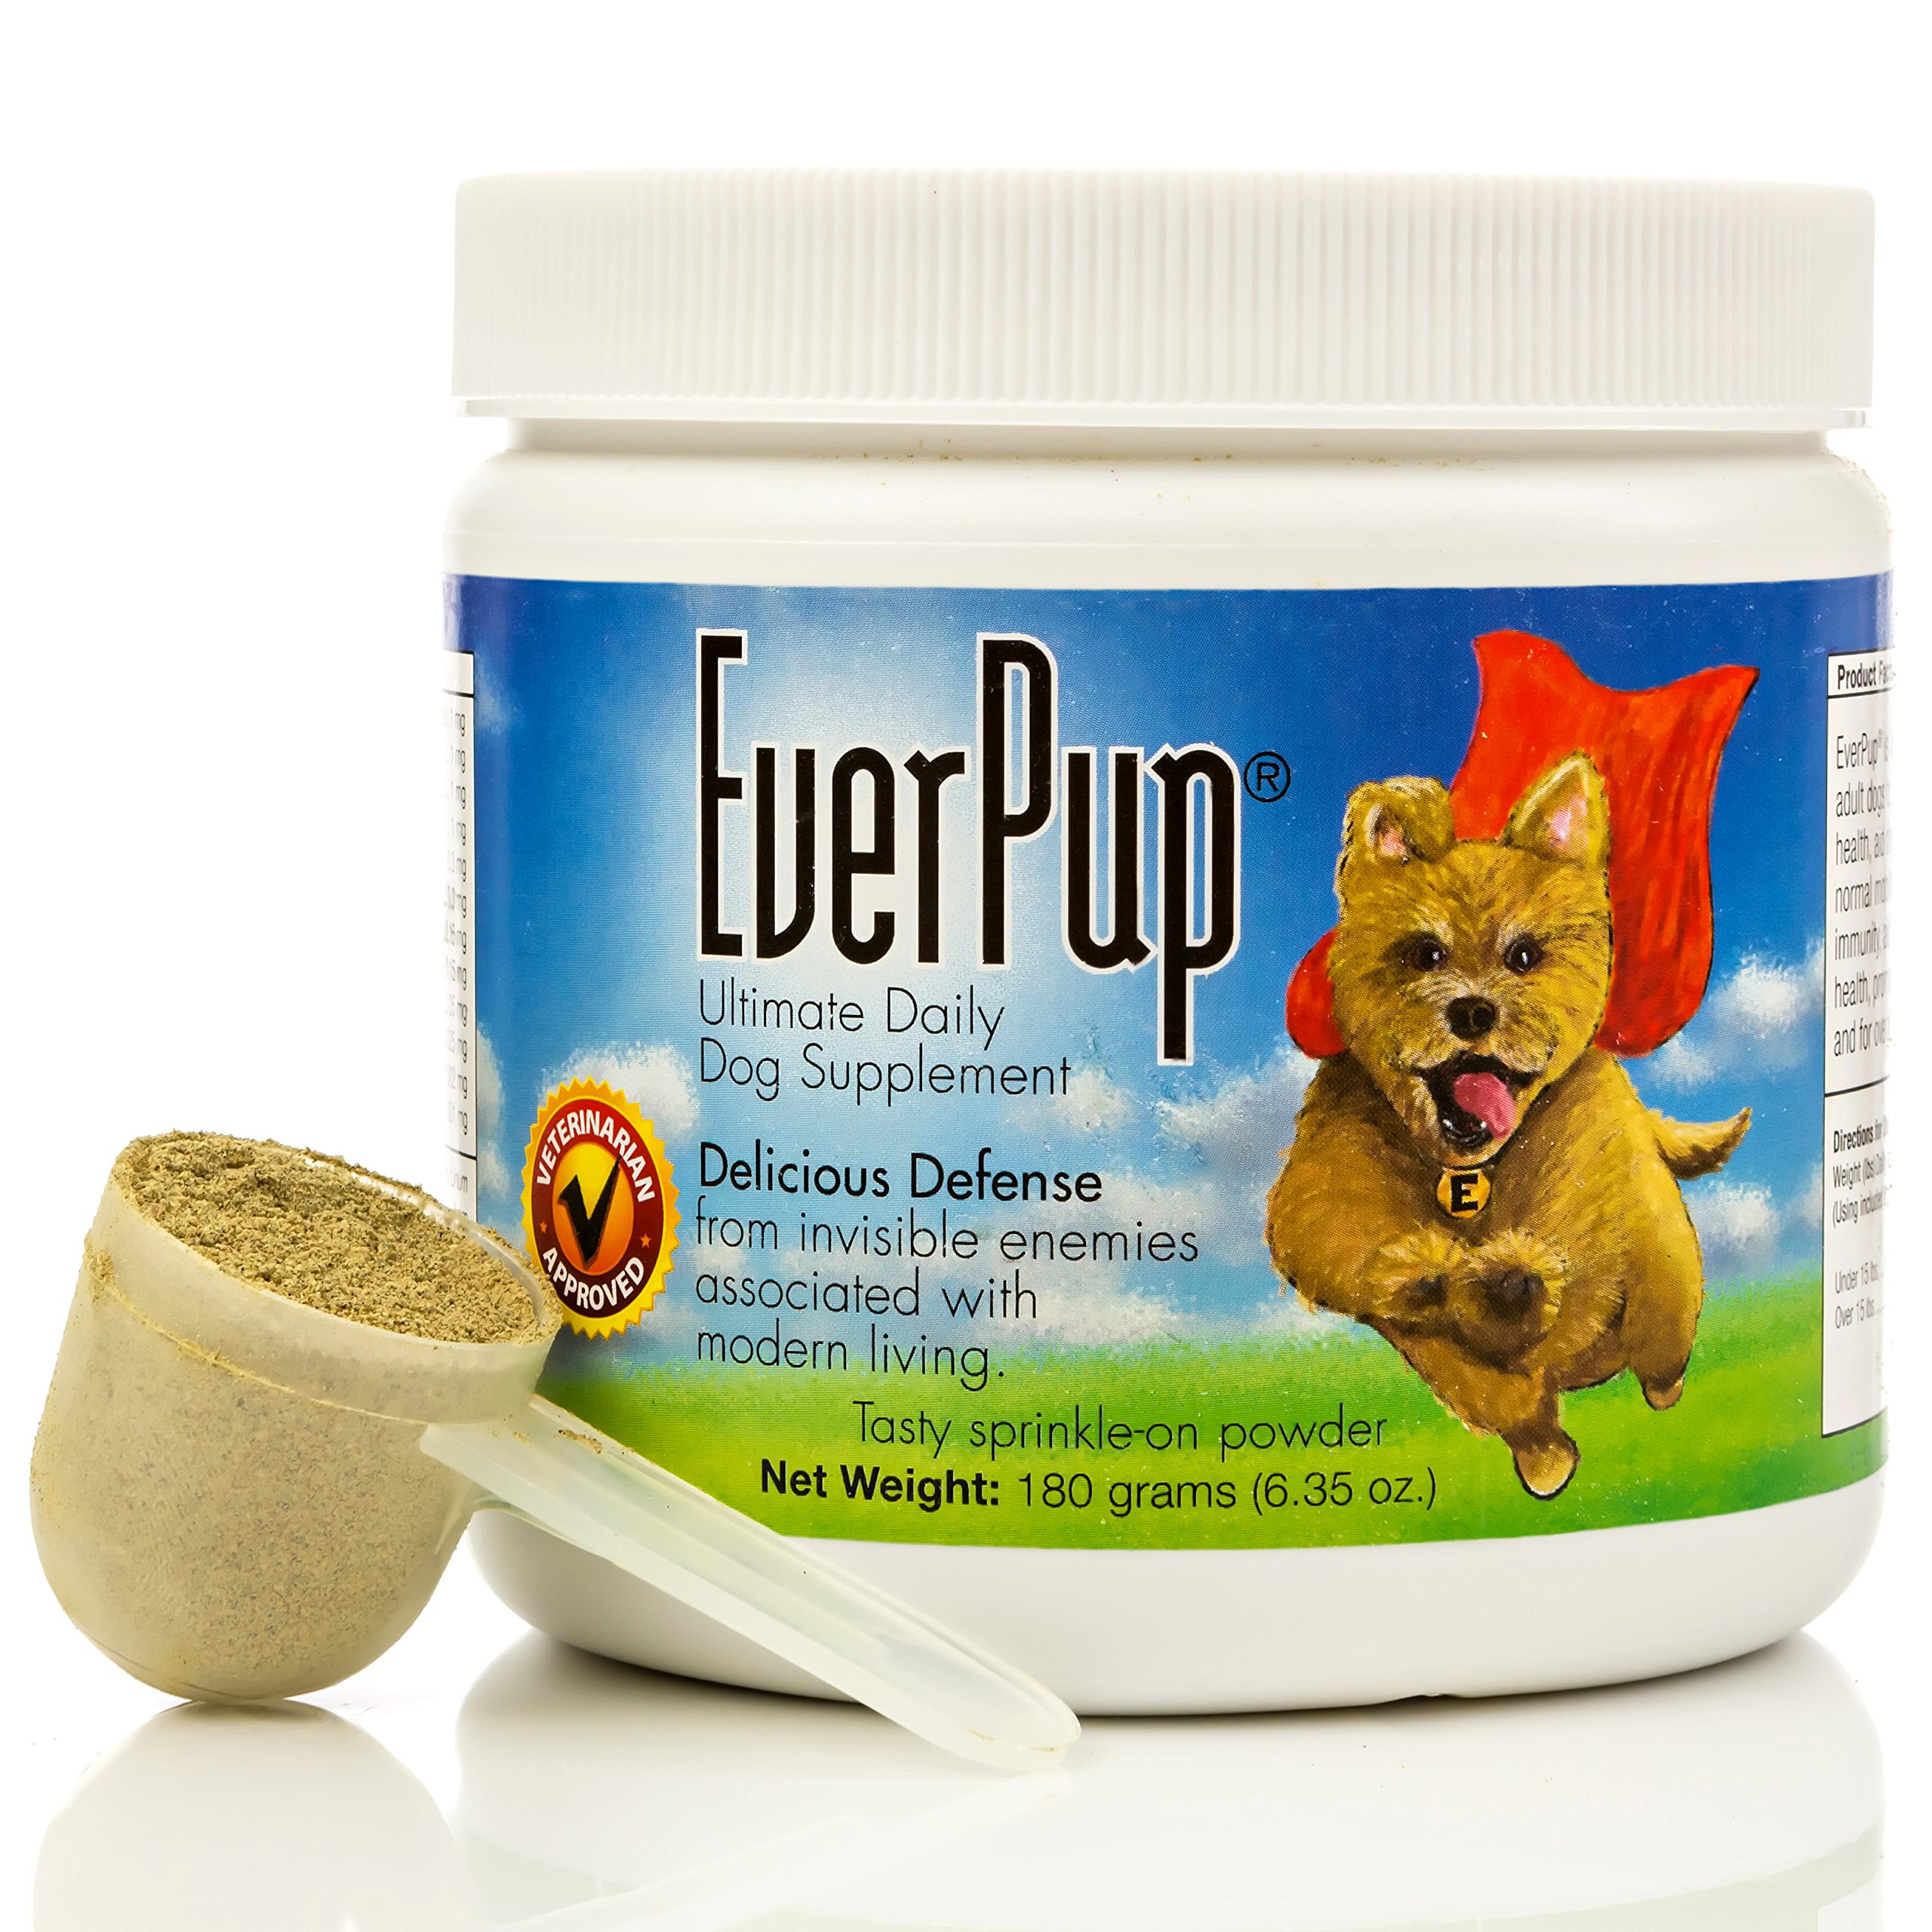 EVERPUP Ultimate Daily Dog Supplement,6.35oz. by Apocaps | EverPup